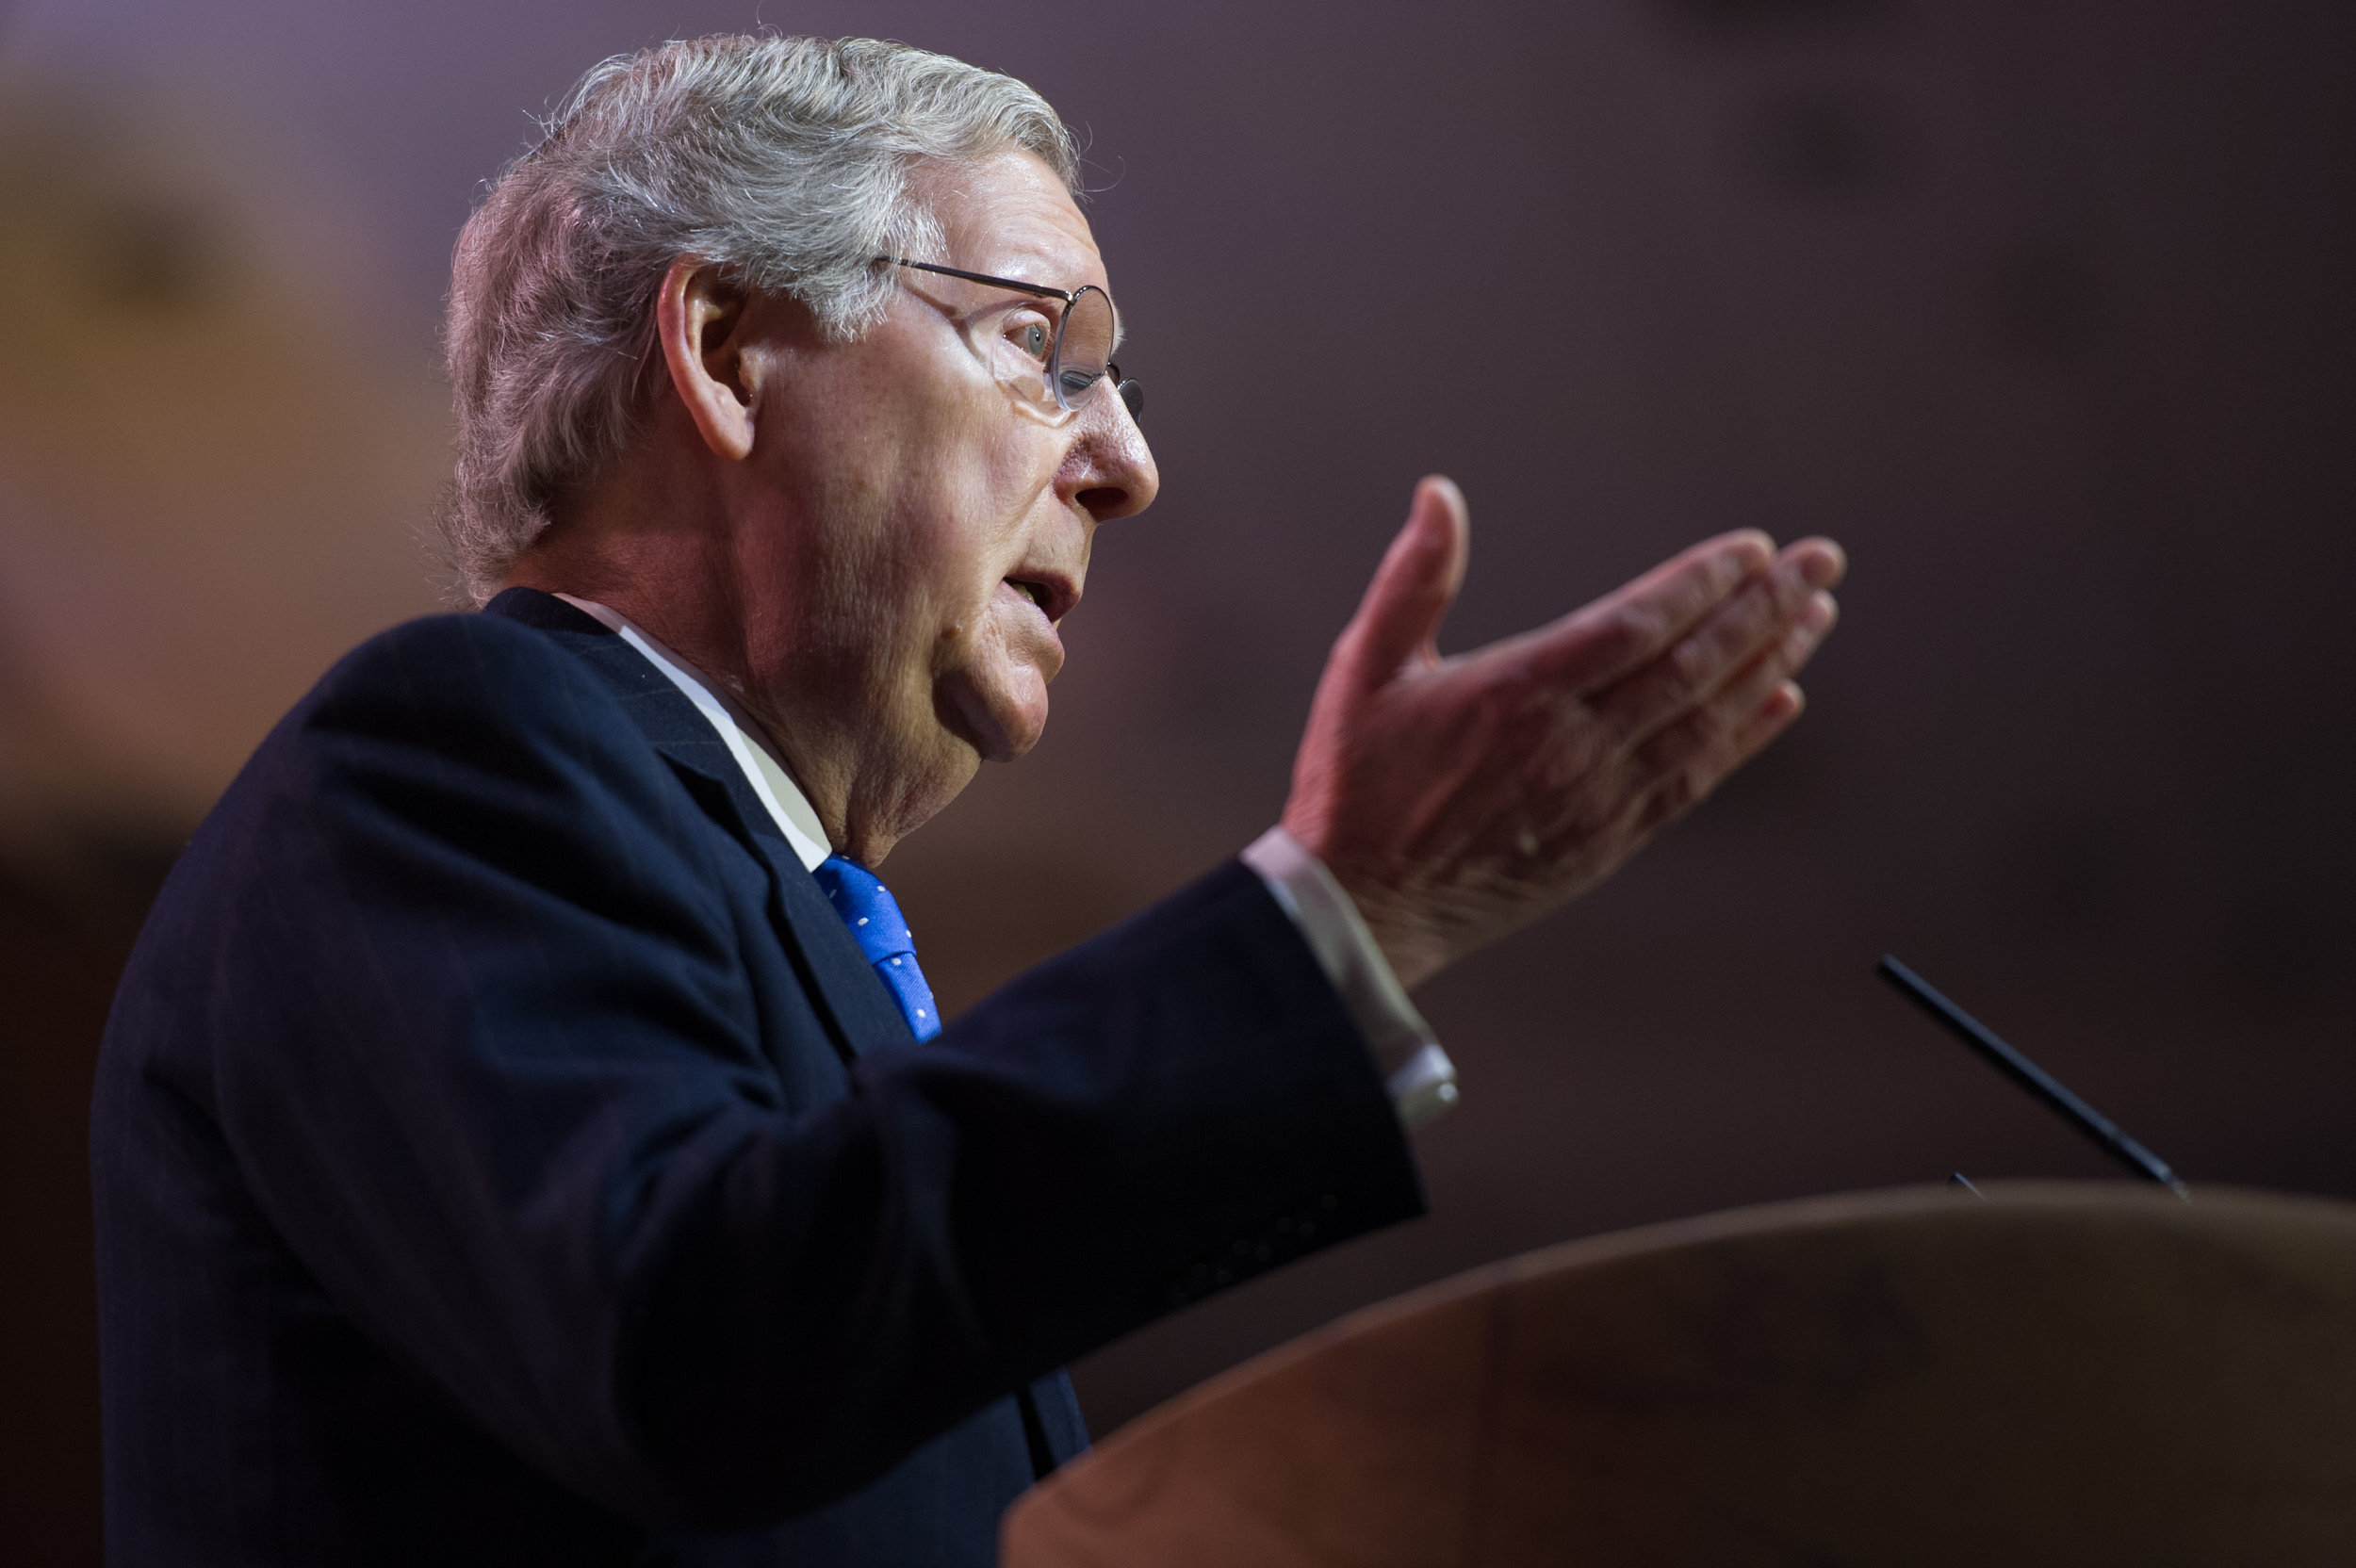 NATIONAL HARBOR, MD - MARCH 6, 2014:  Senator Mitch McConnell (R-KY) speaks at the Conservative Political Action Conference